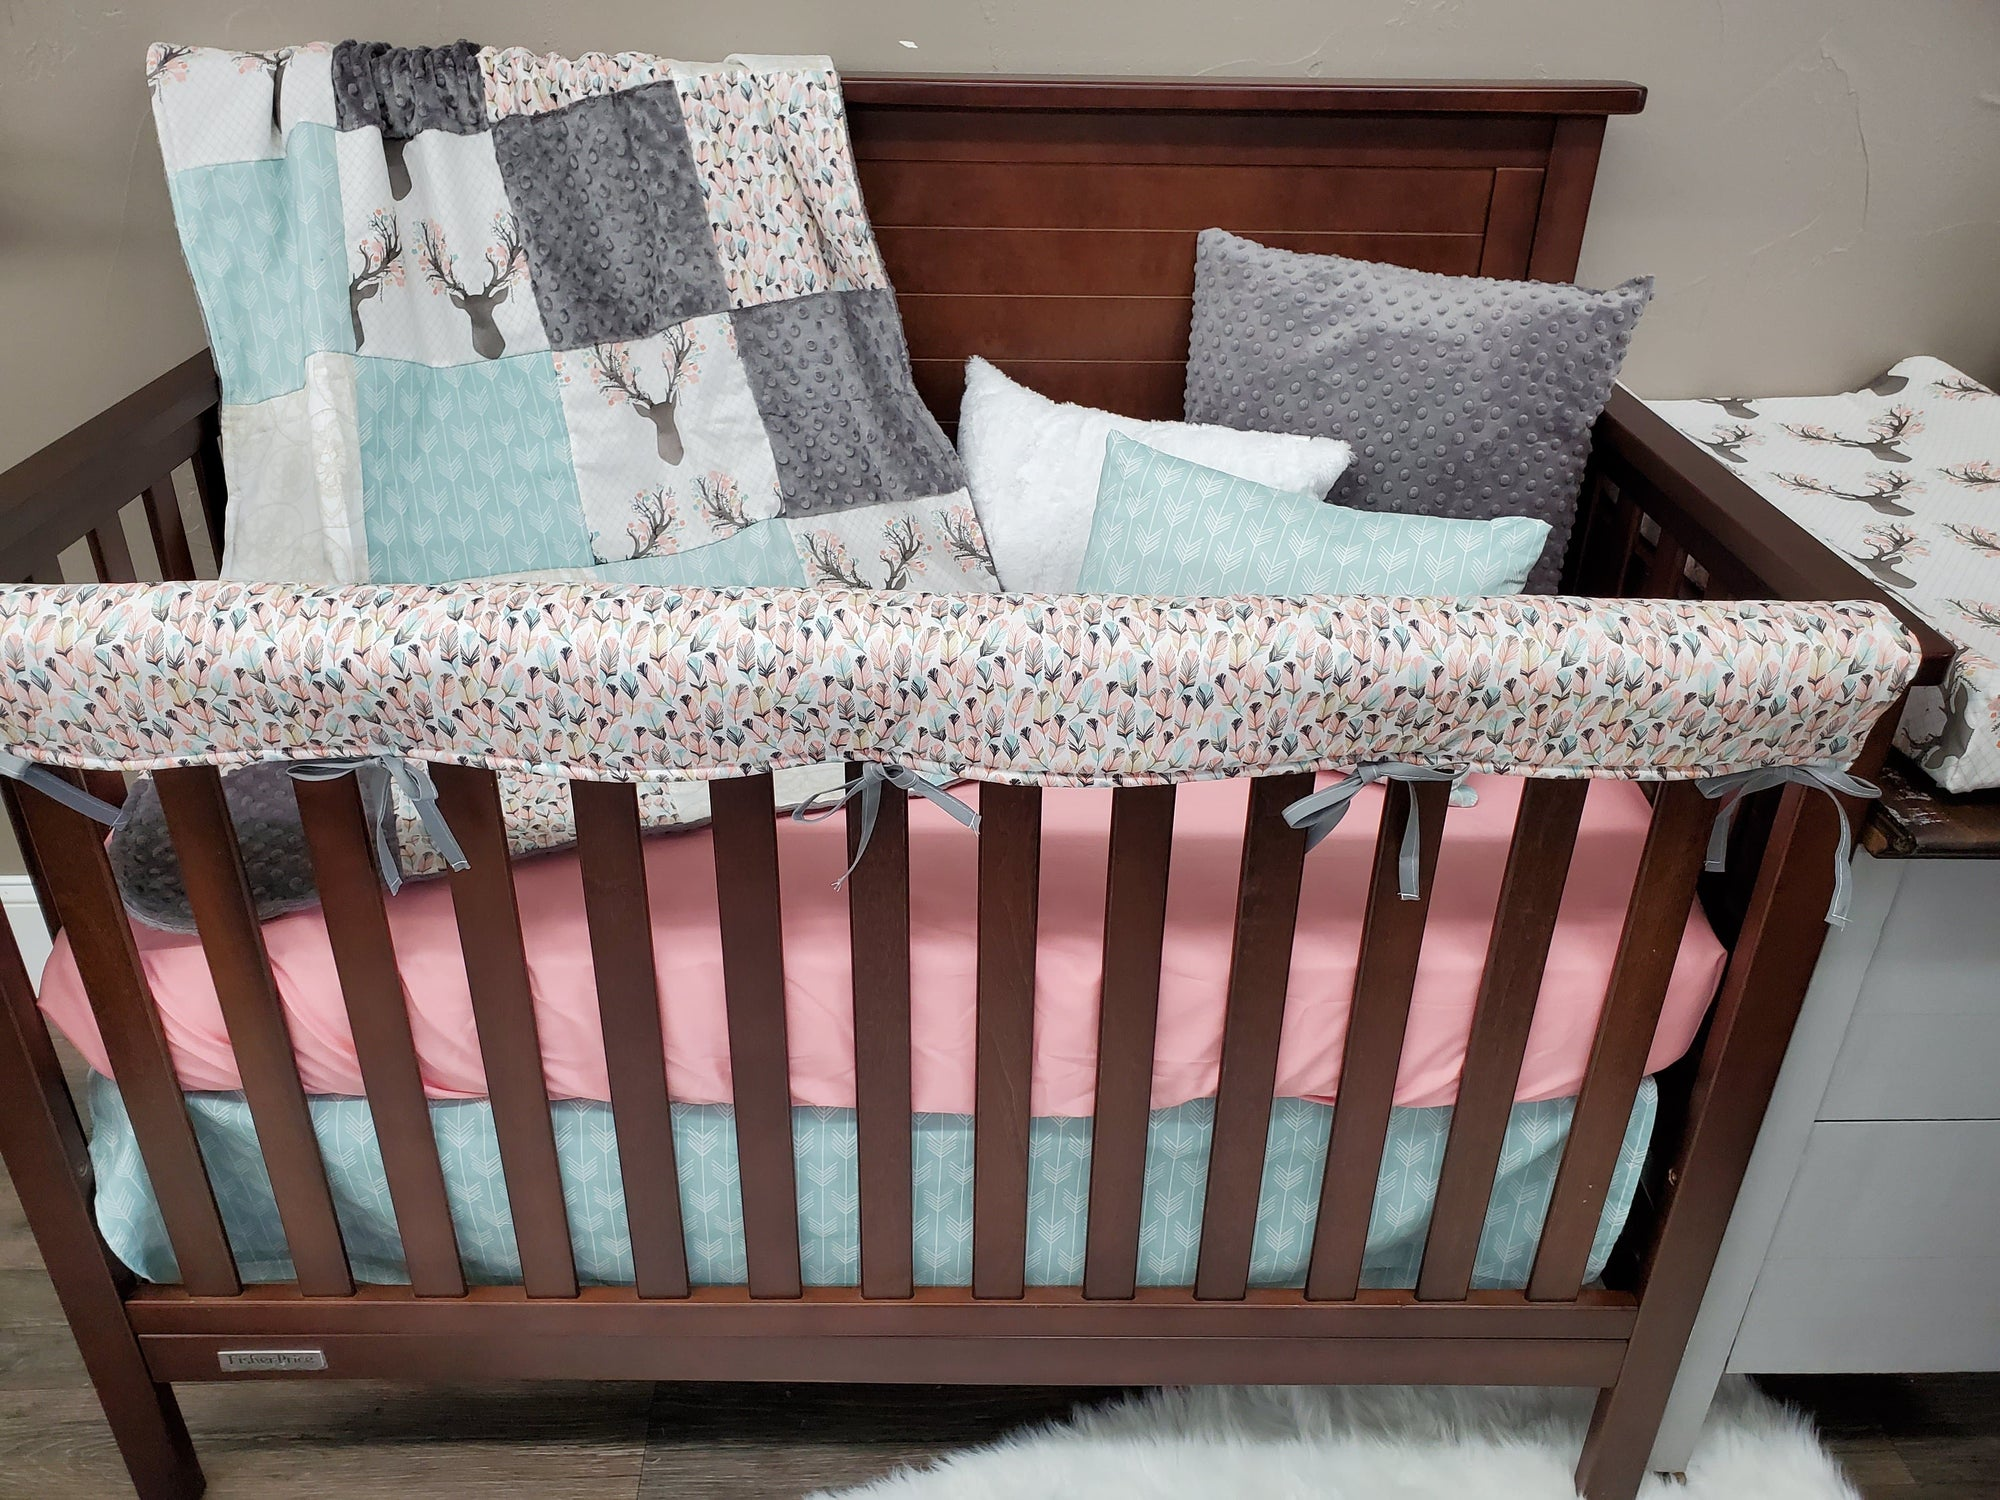 Custom Girl Crib Bedding - Fawn, Mint Arrows, Dream Catchers,  and Feathers, Woodland Crib Bedding